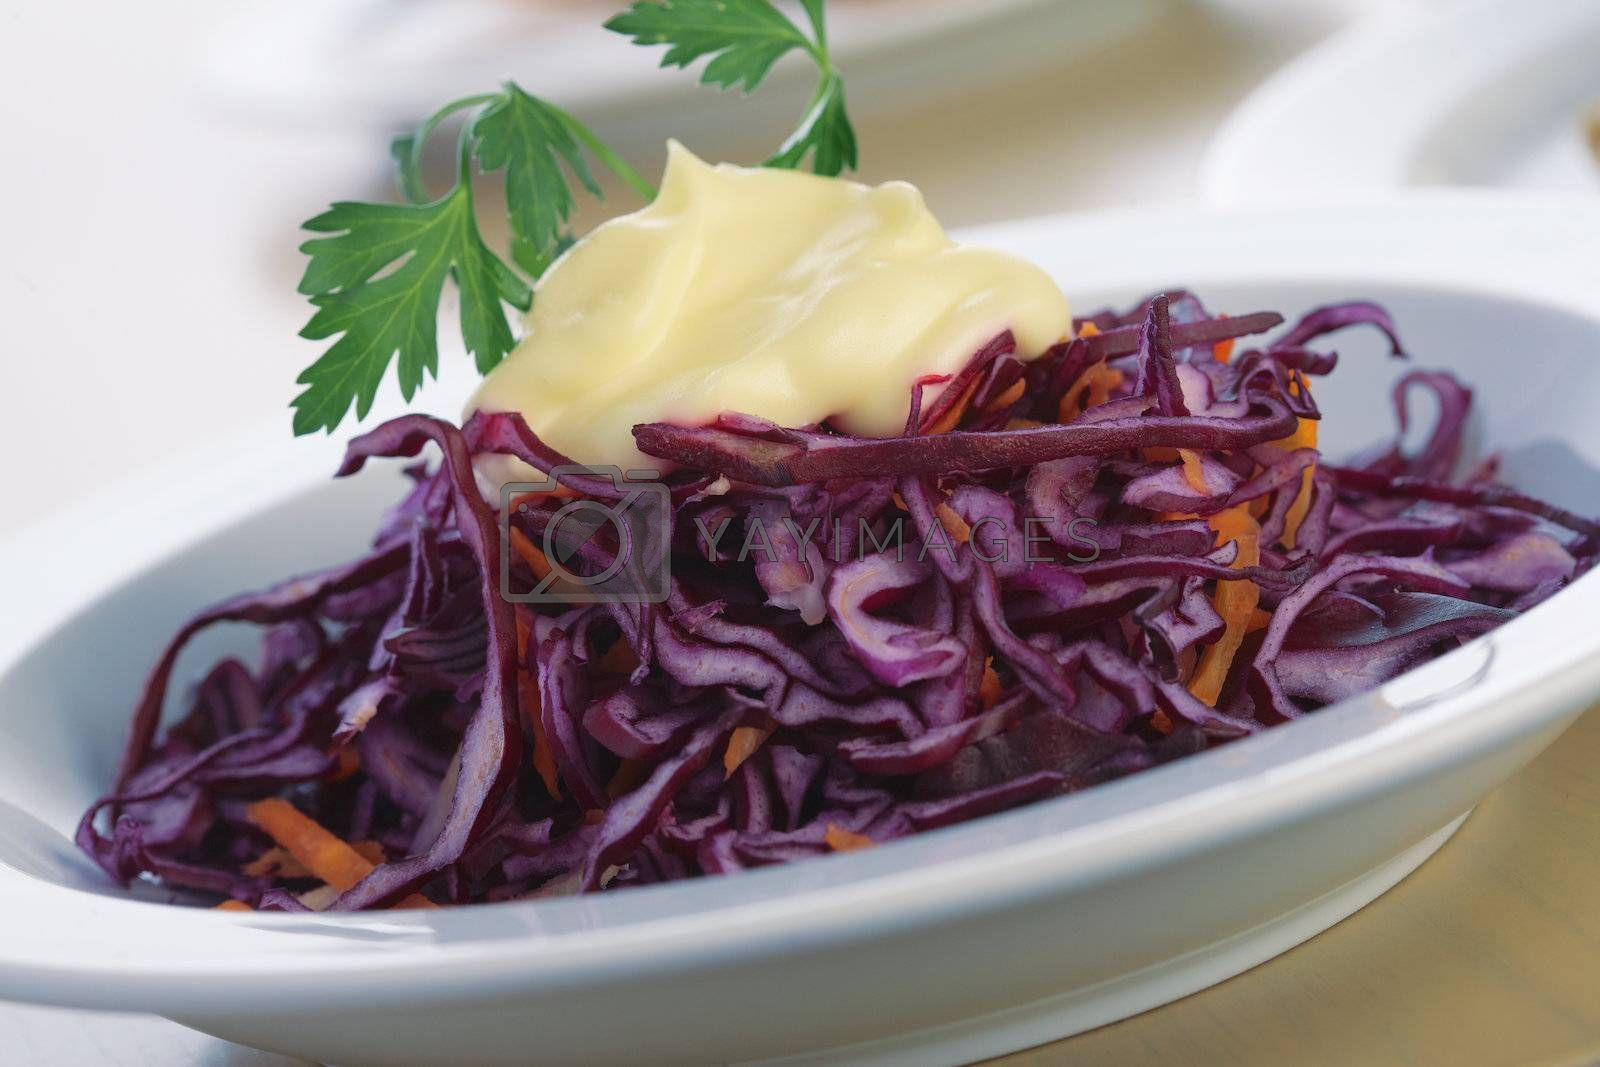 Close-up picture of a salad from red cabbage with mayonnaise and parsley.